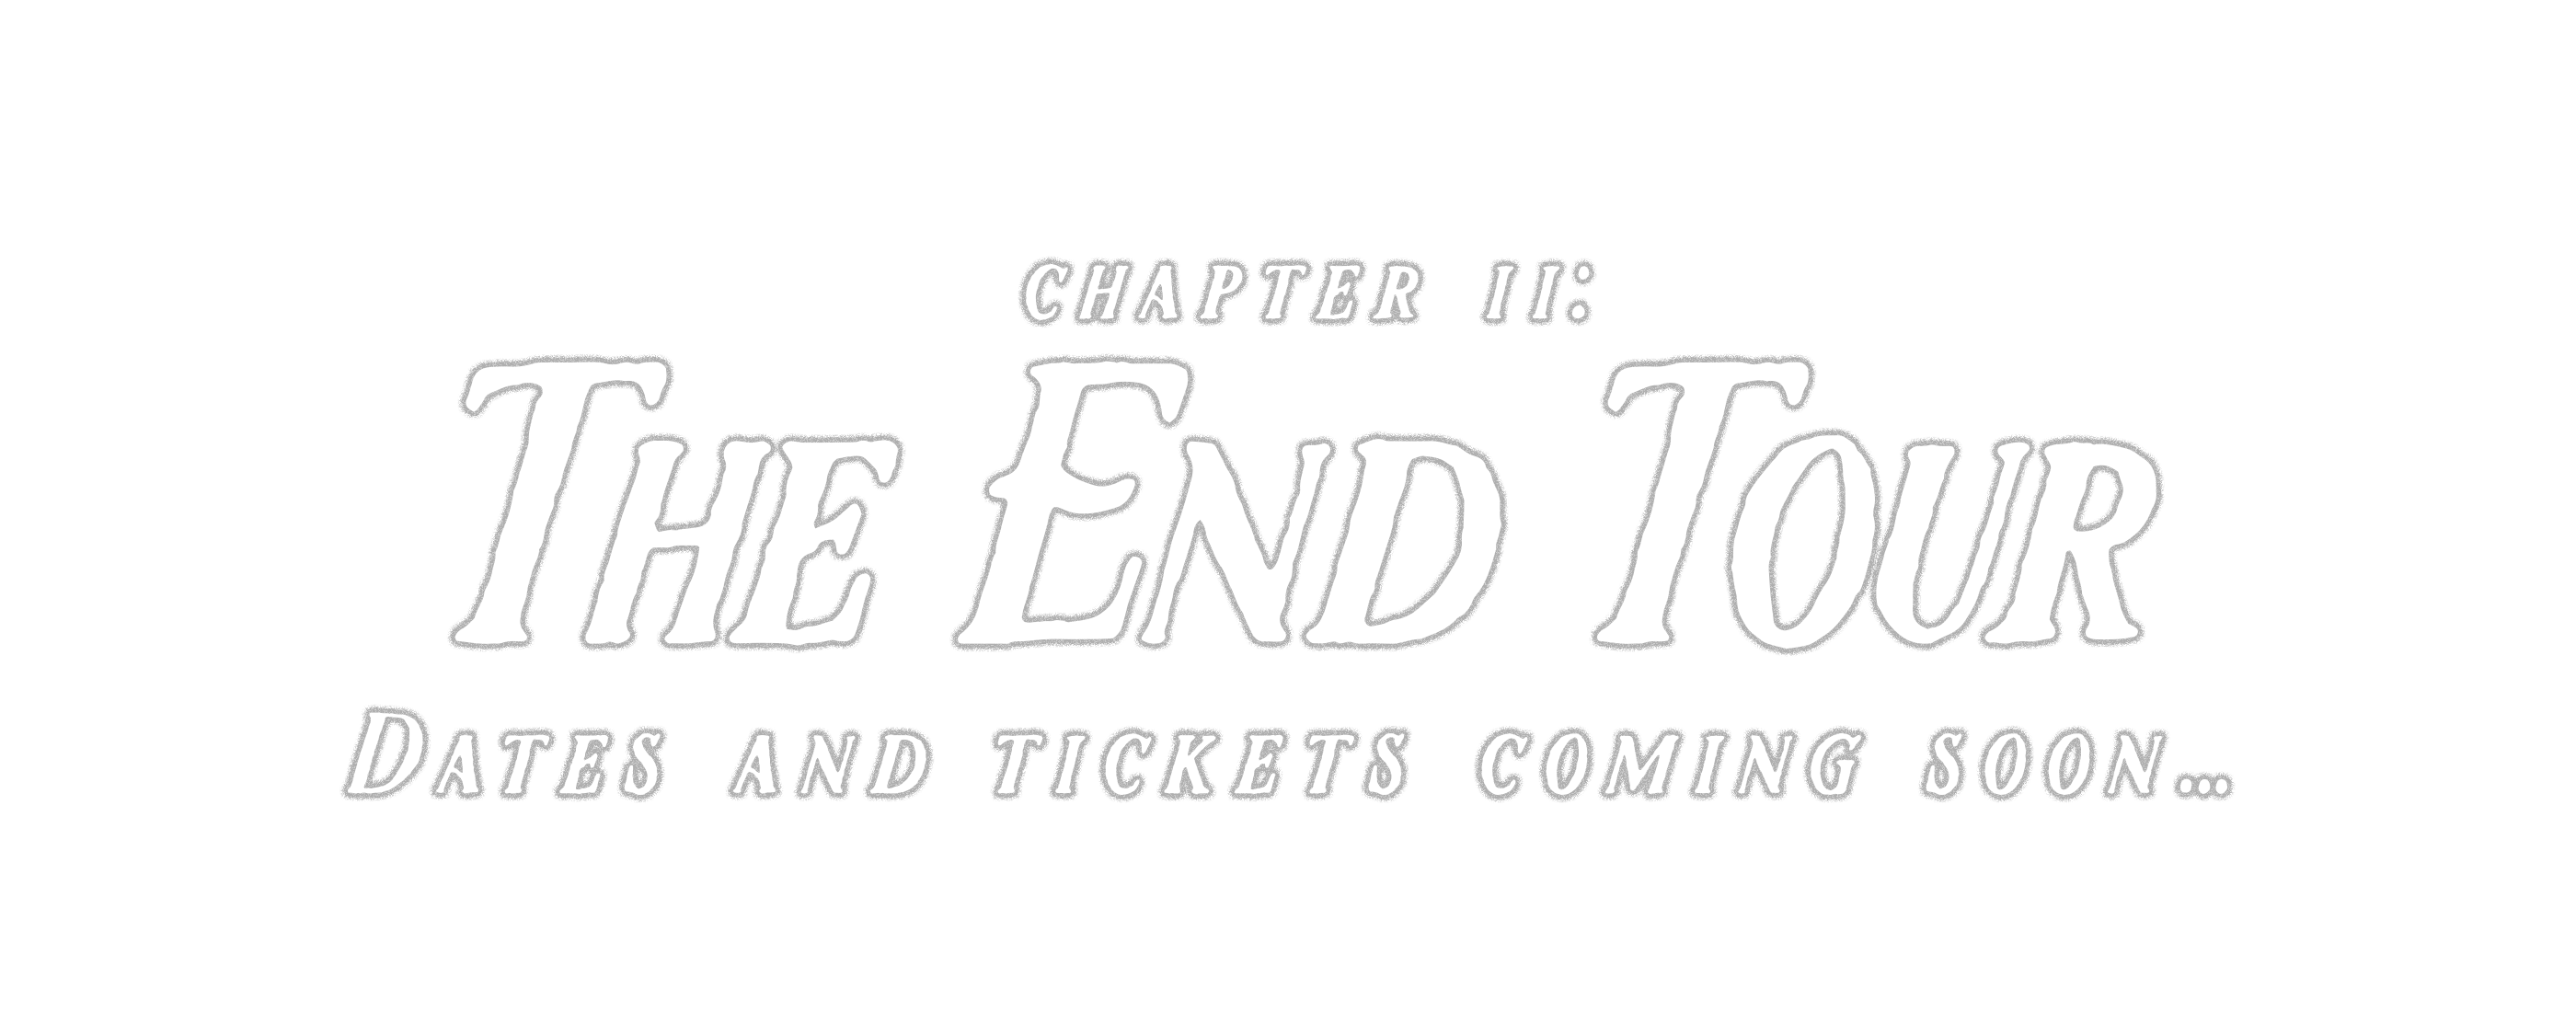 Chapter II: The End Tour Dates and tickets coming soon...